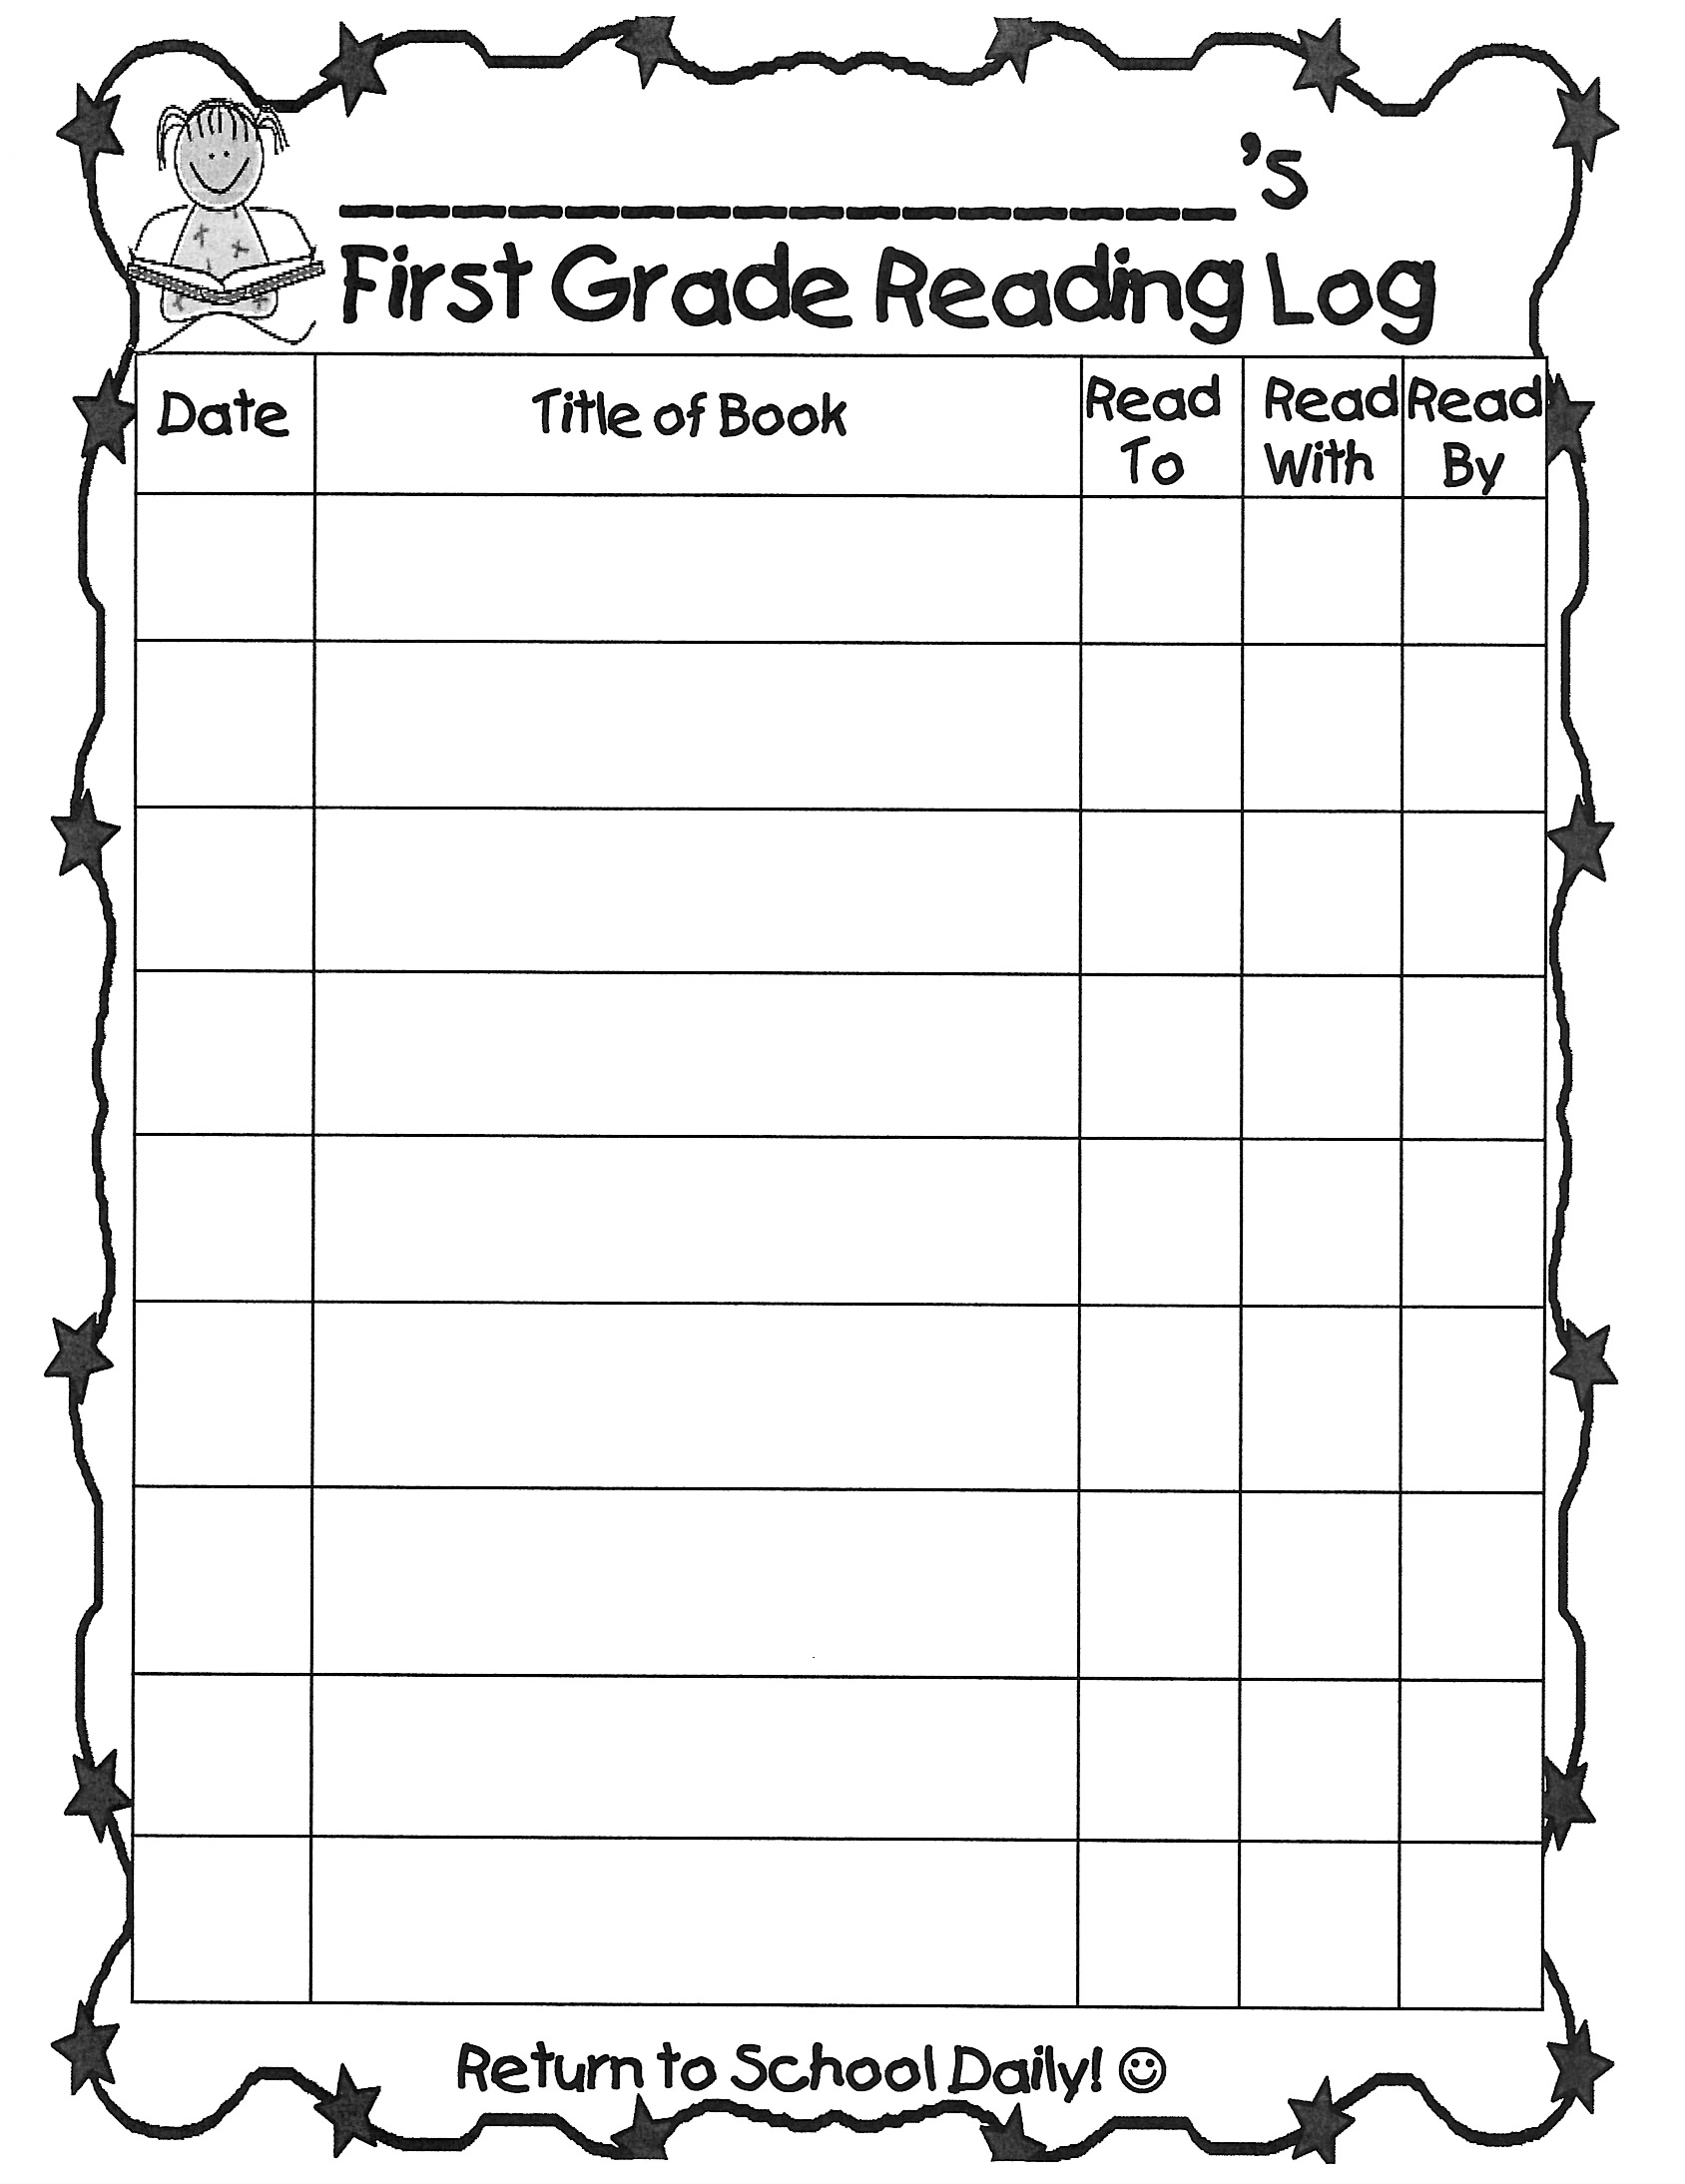 Worksheet Reading For Grade One worksheet grade one reading mikyu free farelli annette 1 teacher log form first log